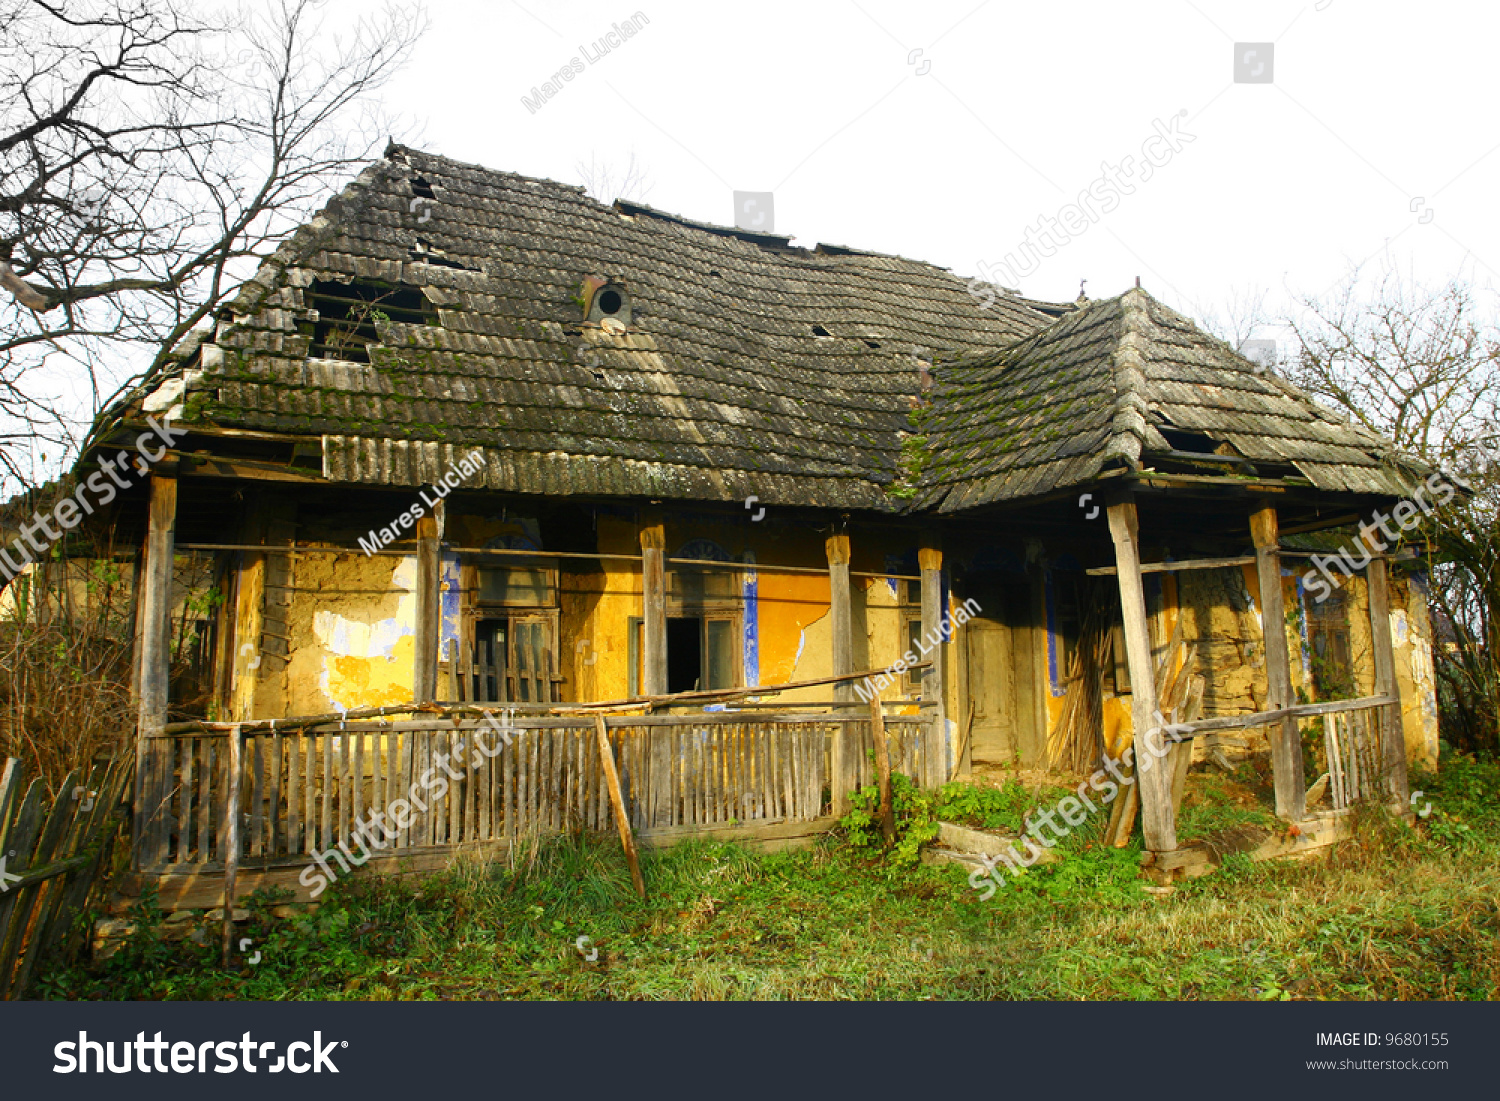 Old country house stock photo 9680155 shutterstock for Old country homes